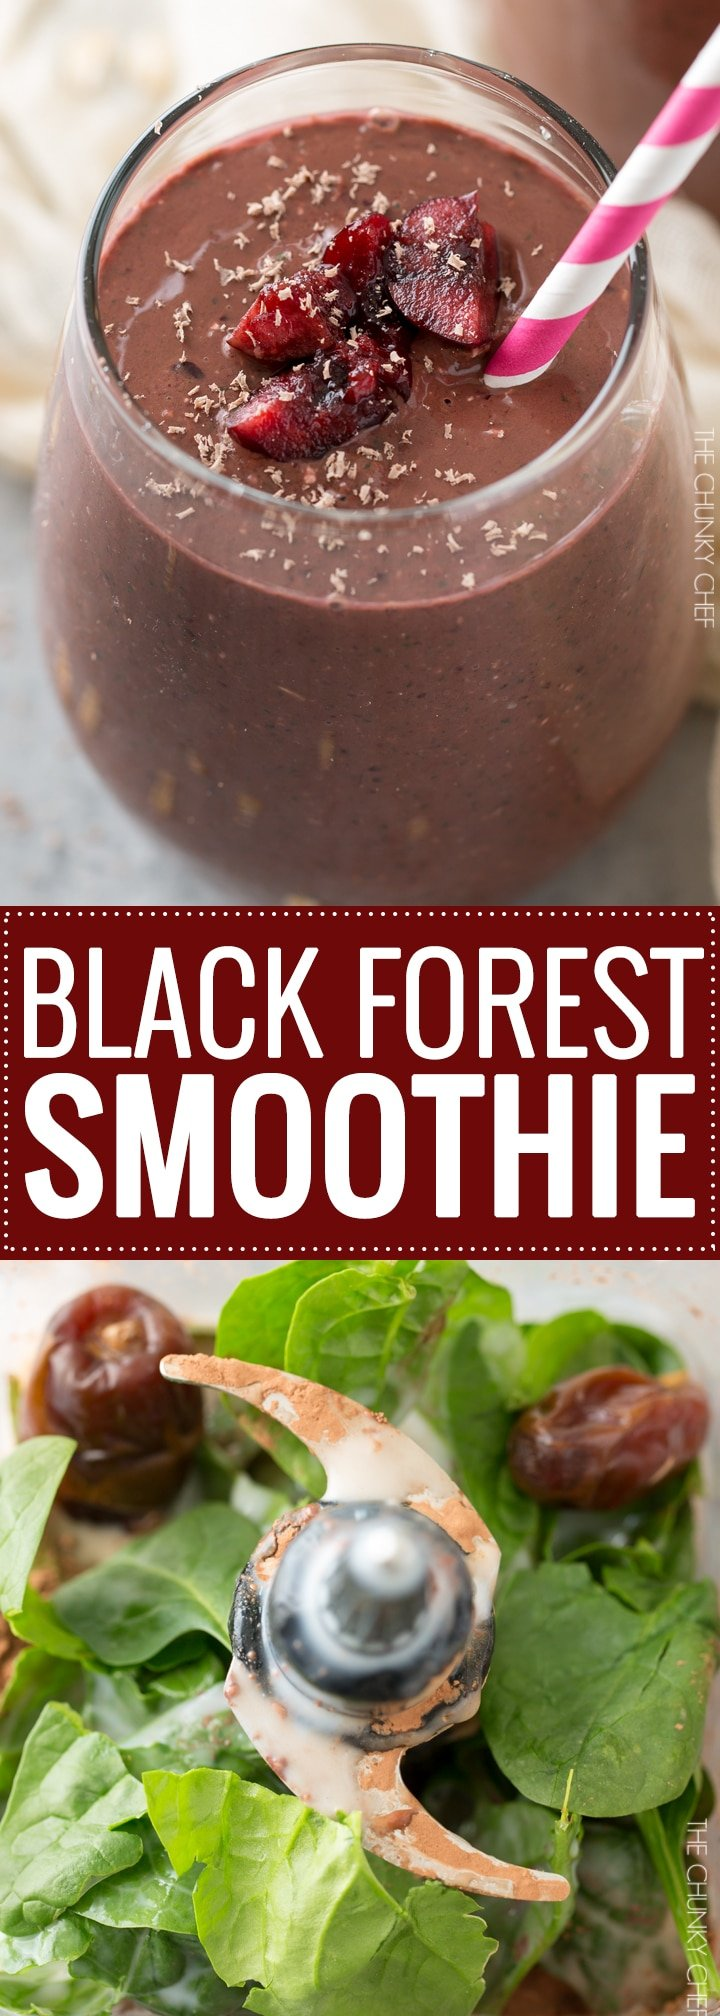 Black Forest Smoothie | This smoothie tastes like dessert, yet is secretly packed full of nutrients (even greens), to help you stick to your resolutions! | http://thechunkychef.com